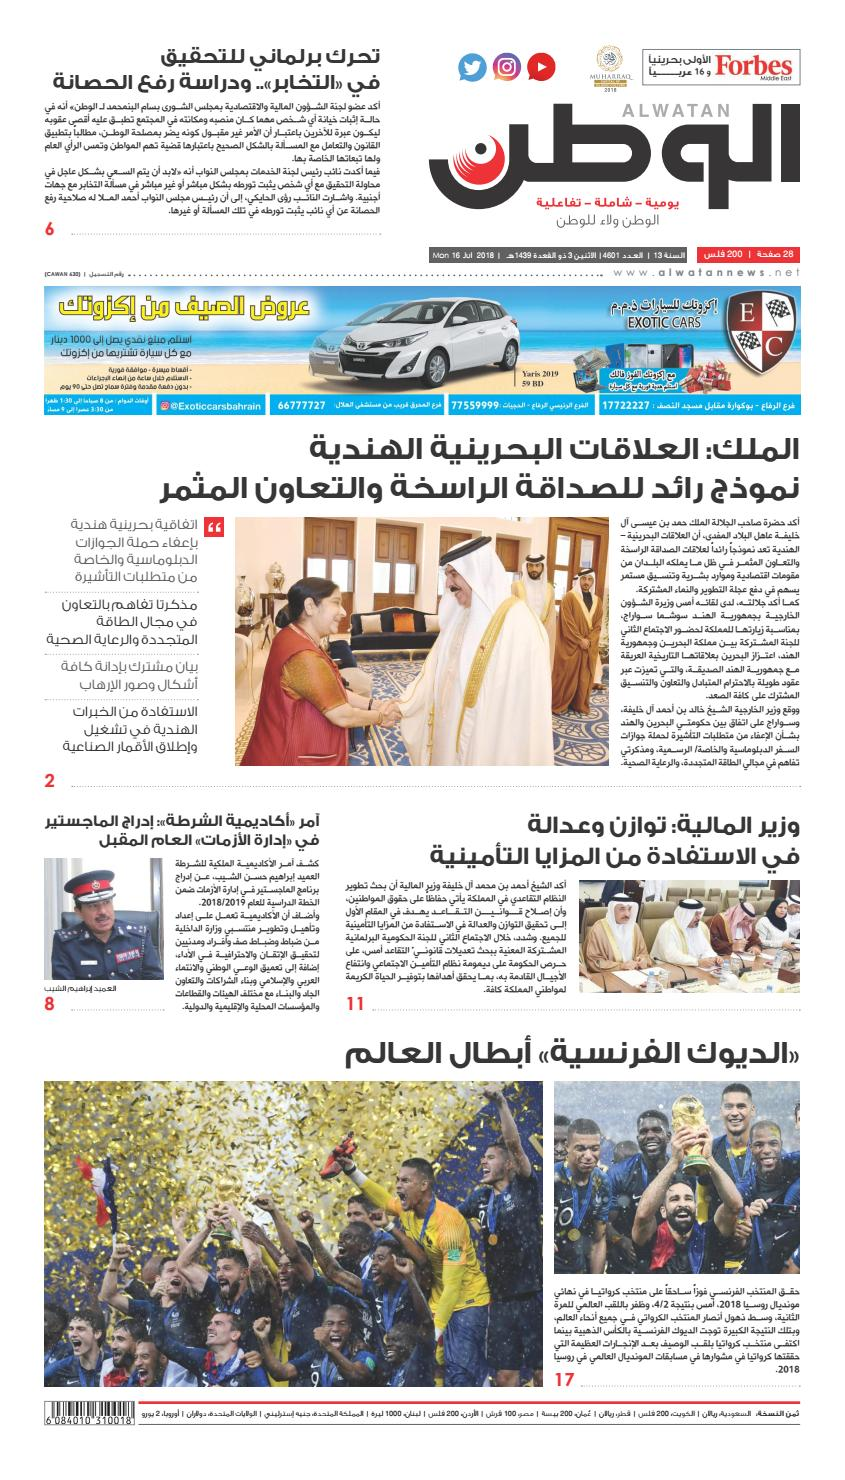 a5ebcc525 Alwatan 16 JUL 2018 by Alwatan_BH - issuu